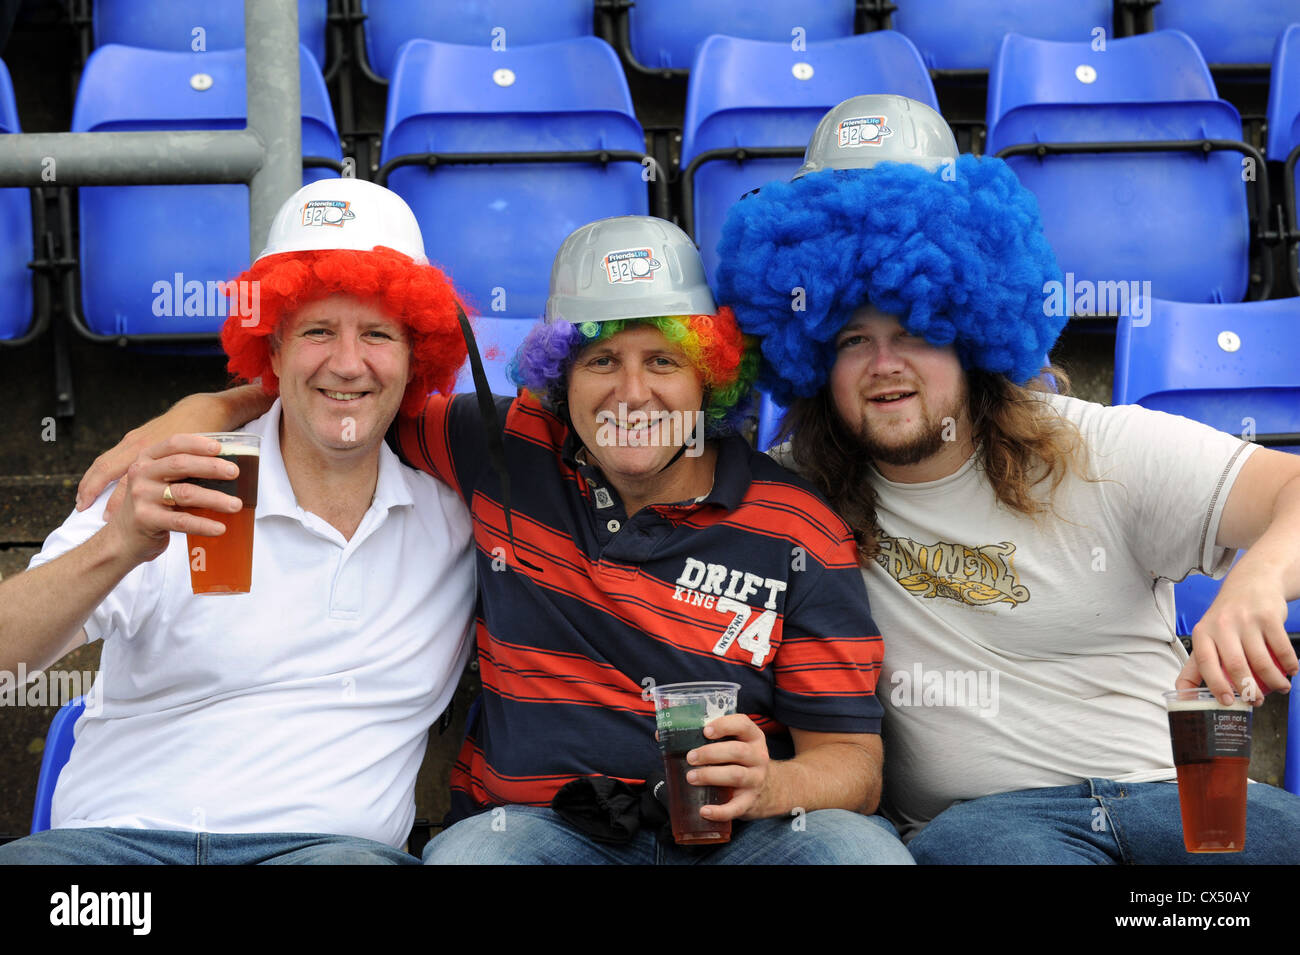 Cricket fans in fancy dress ready for the start of the  Twenty20 Finals Day 2012 at the Swalec Stadium in Cardiff - Stock Image